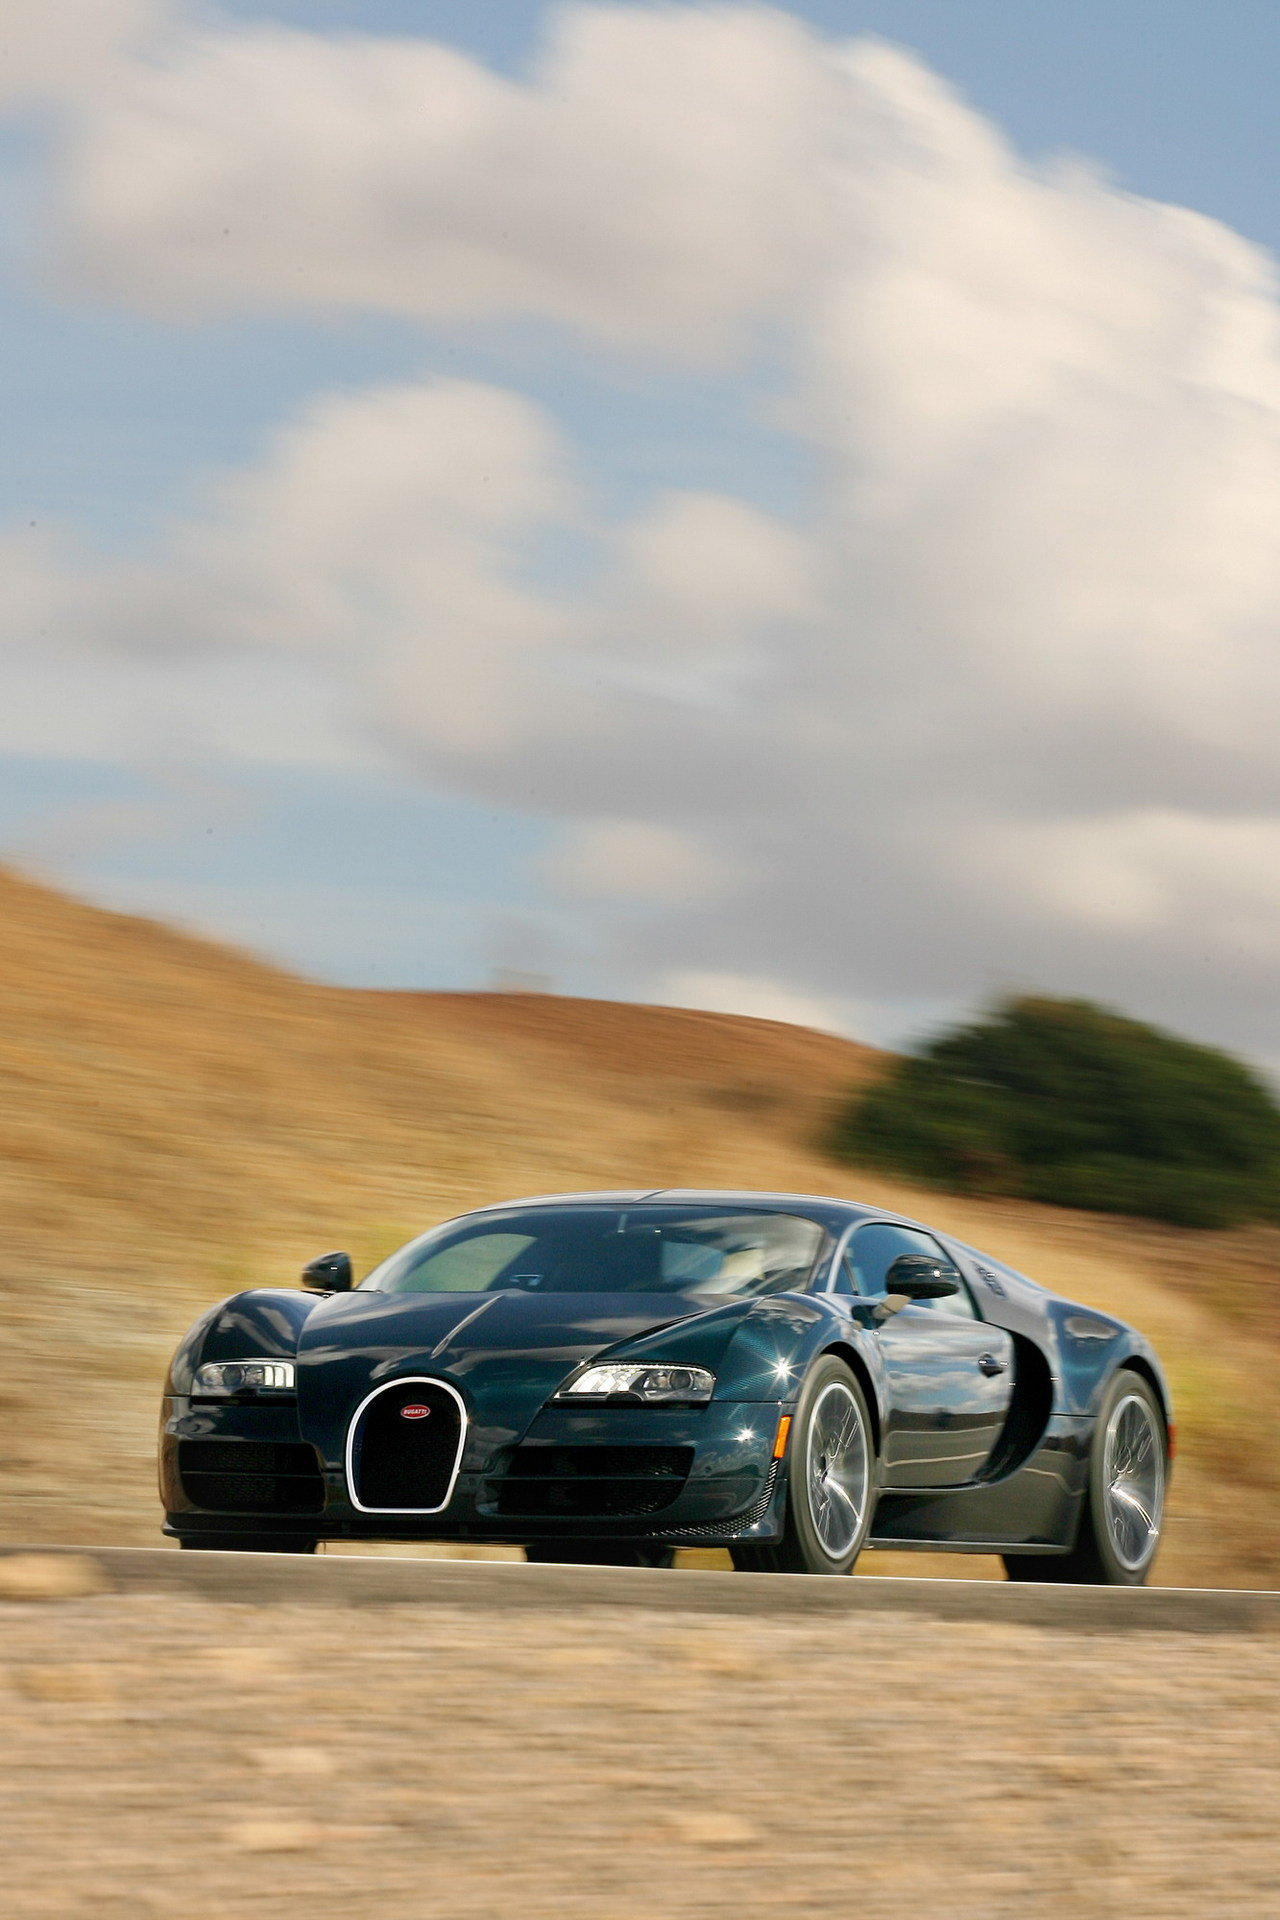 bugatti veyron 16 4 super sport picture 384701 car review top. Cars Review. Best American Auto & Cars Review